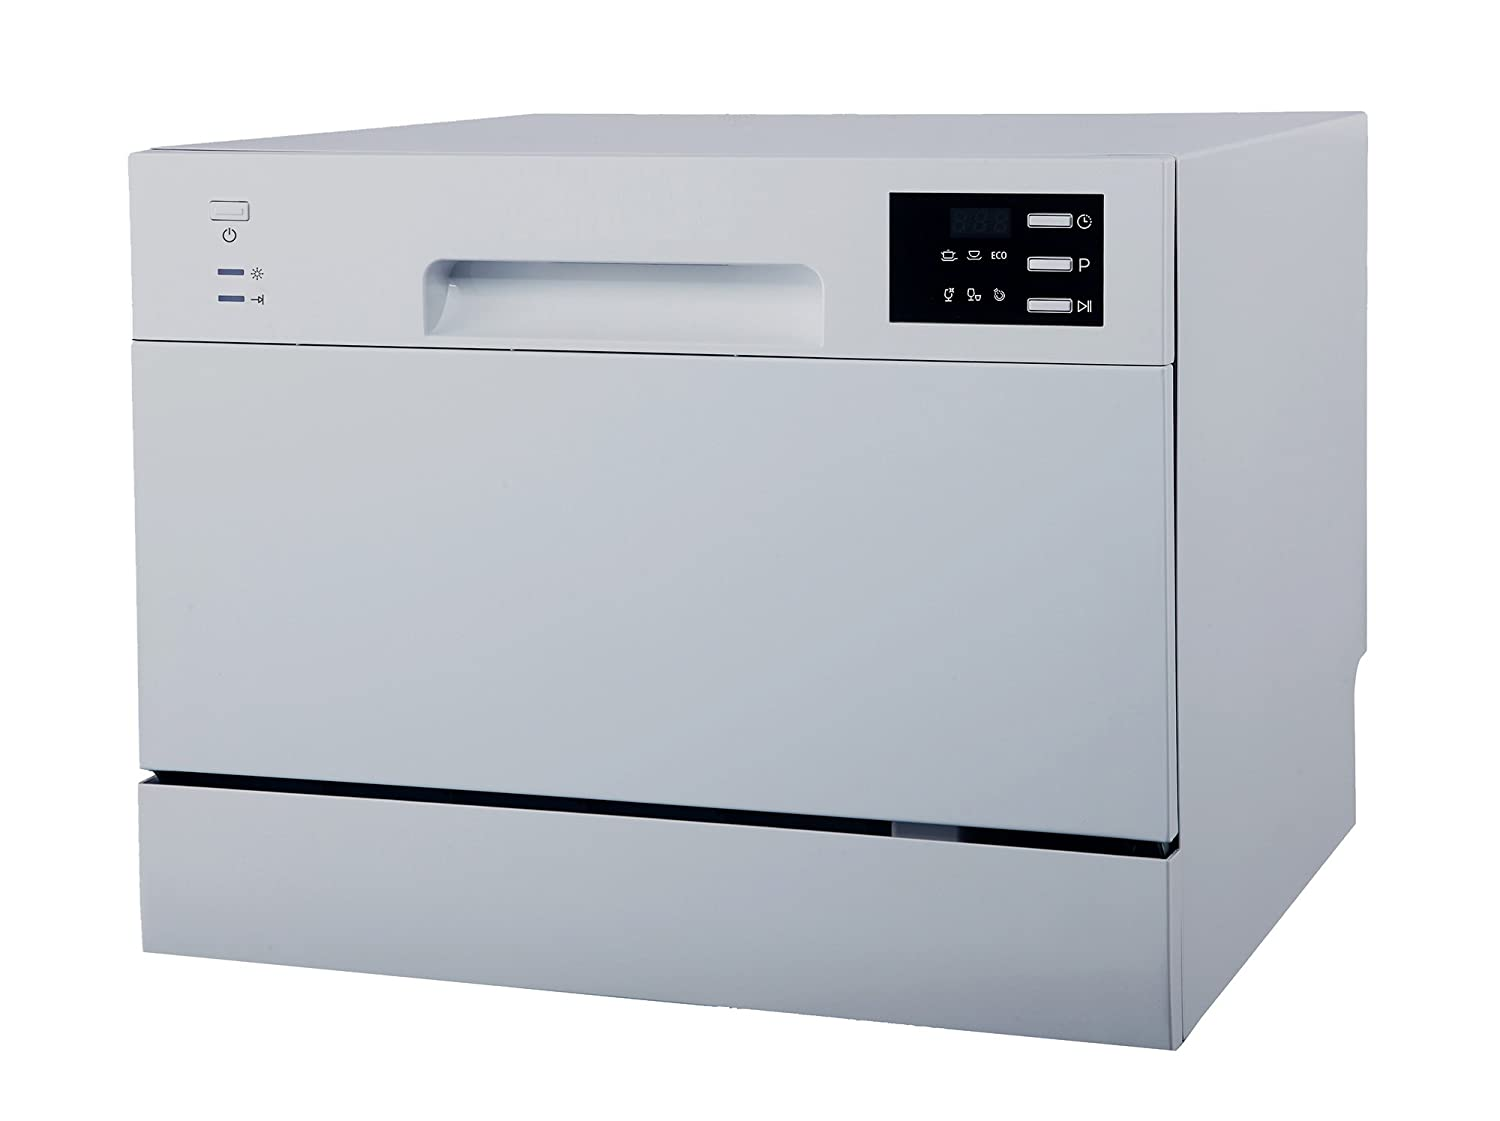 Amazon.com: SPT SD-2225DS Countertop Dishwasher with Delay Start ...